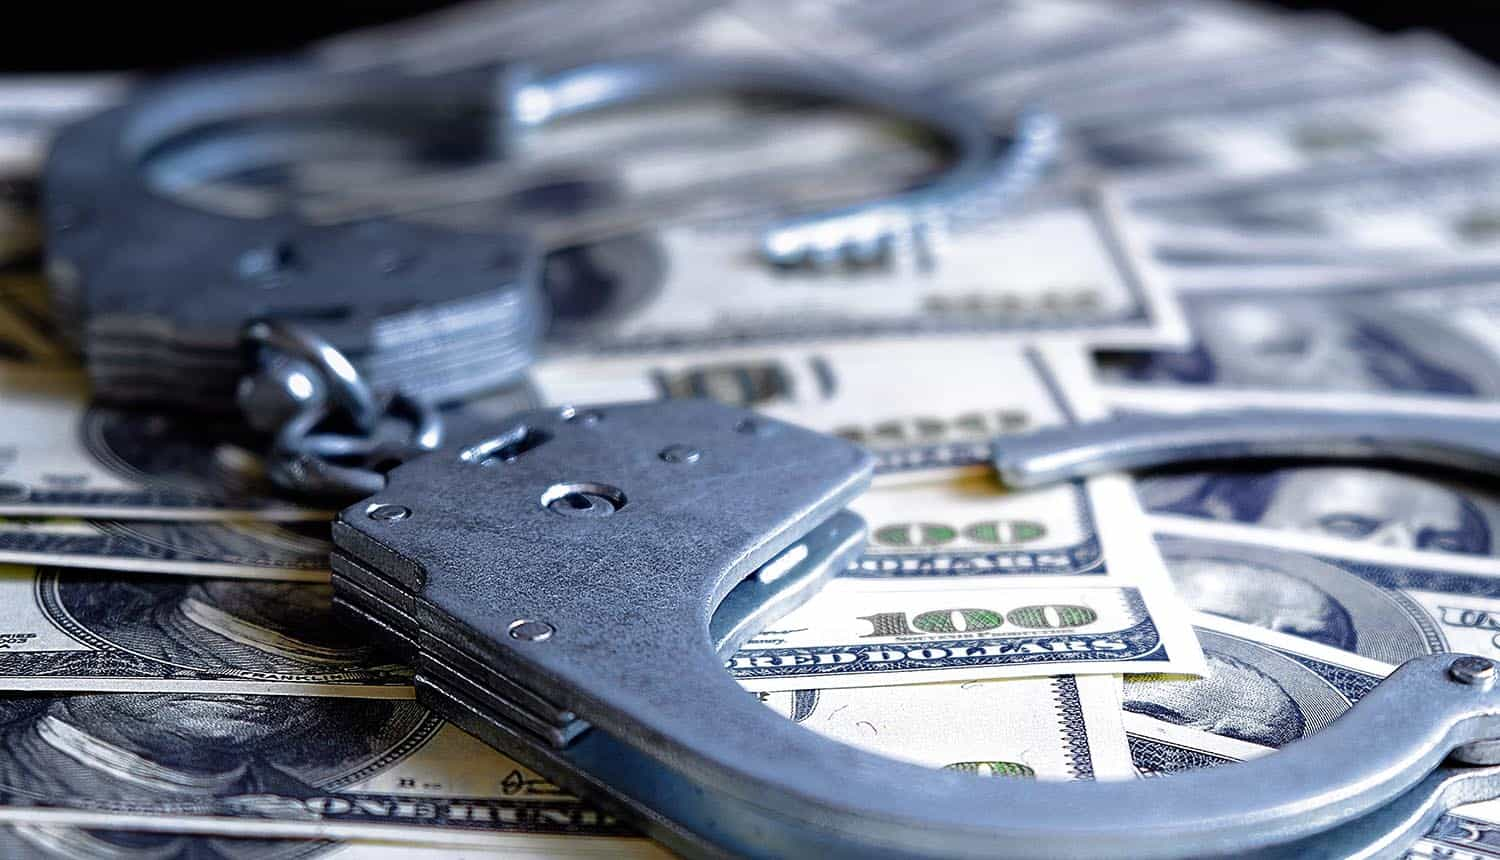 Money and handcuffs showing US Treasury warning of ransomware payments